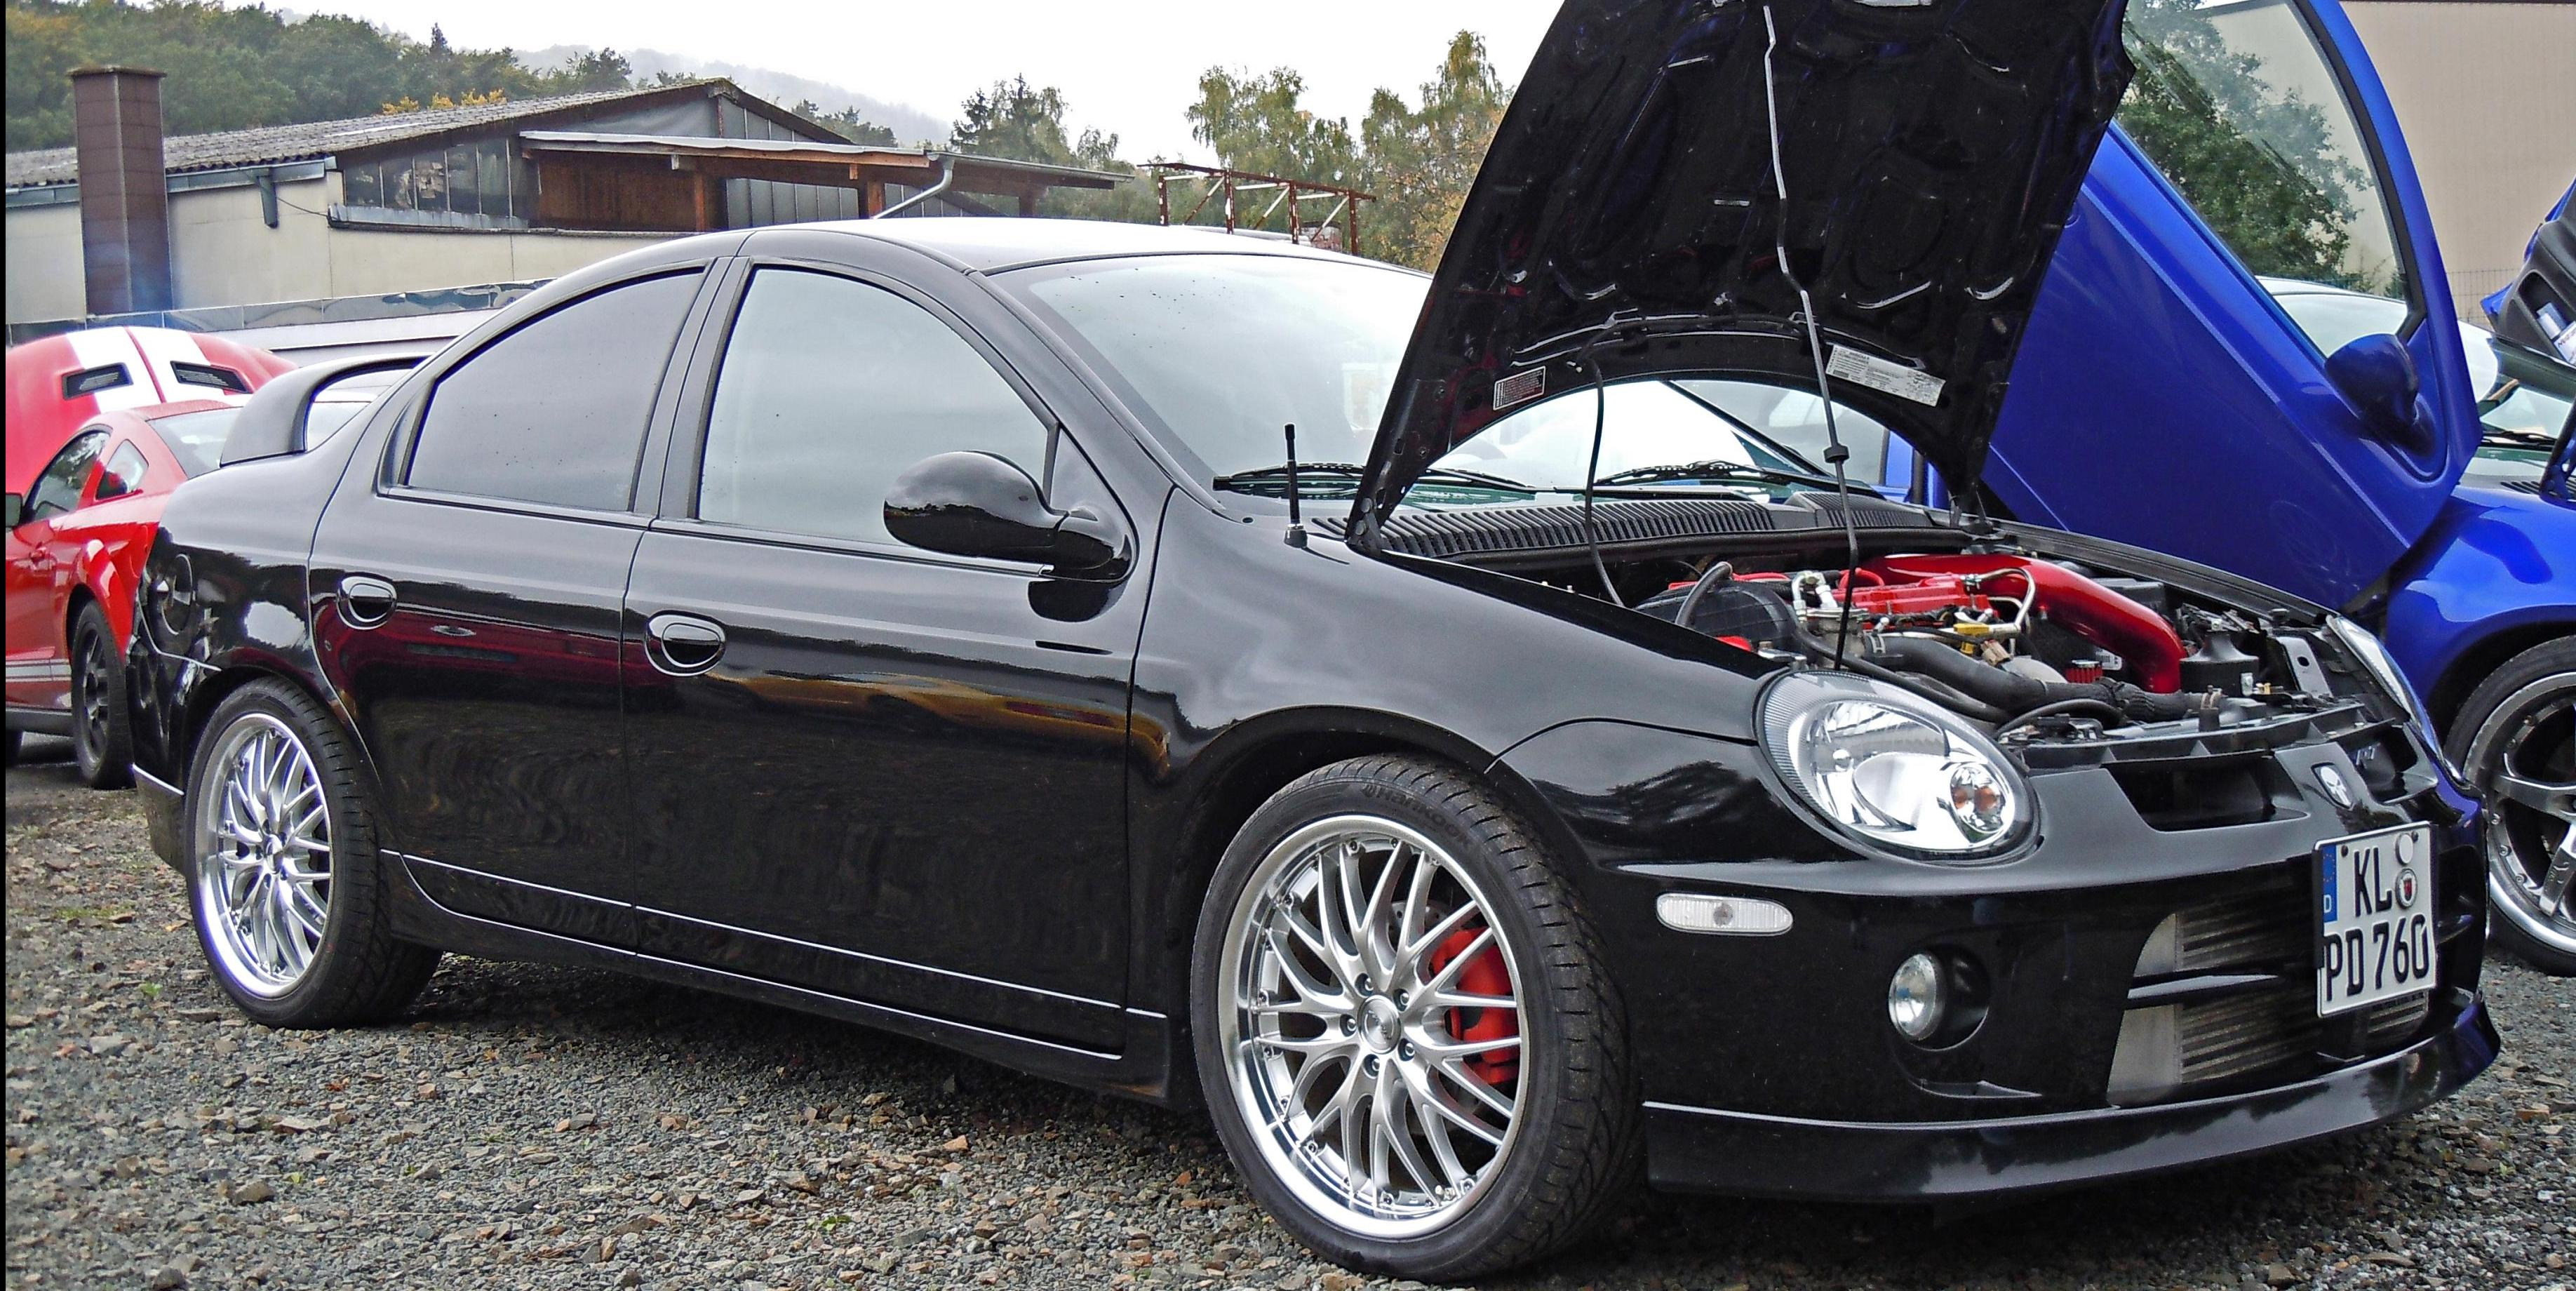 Blacksunshine05's 2005 Dodge Neon